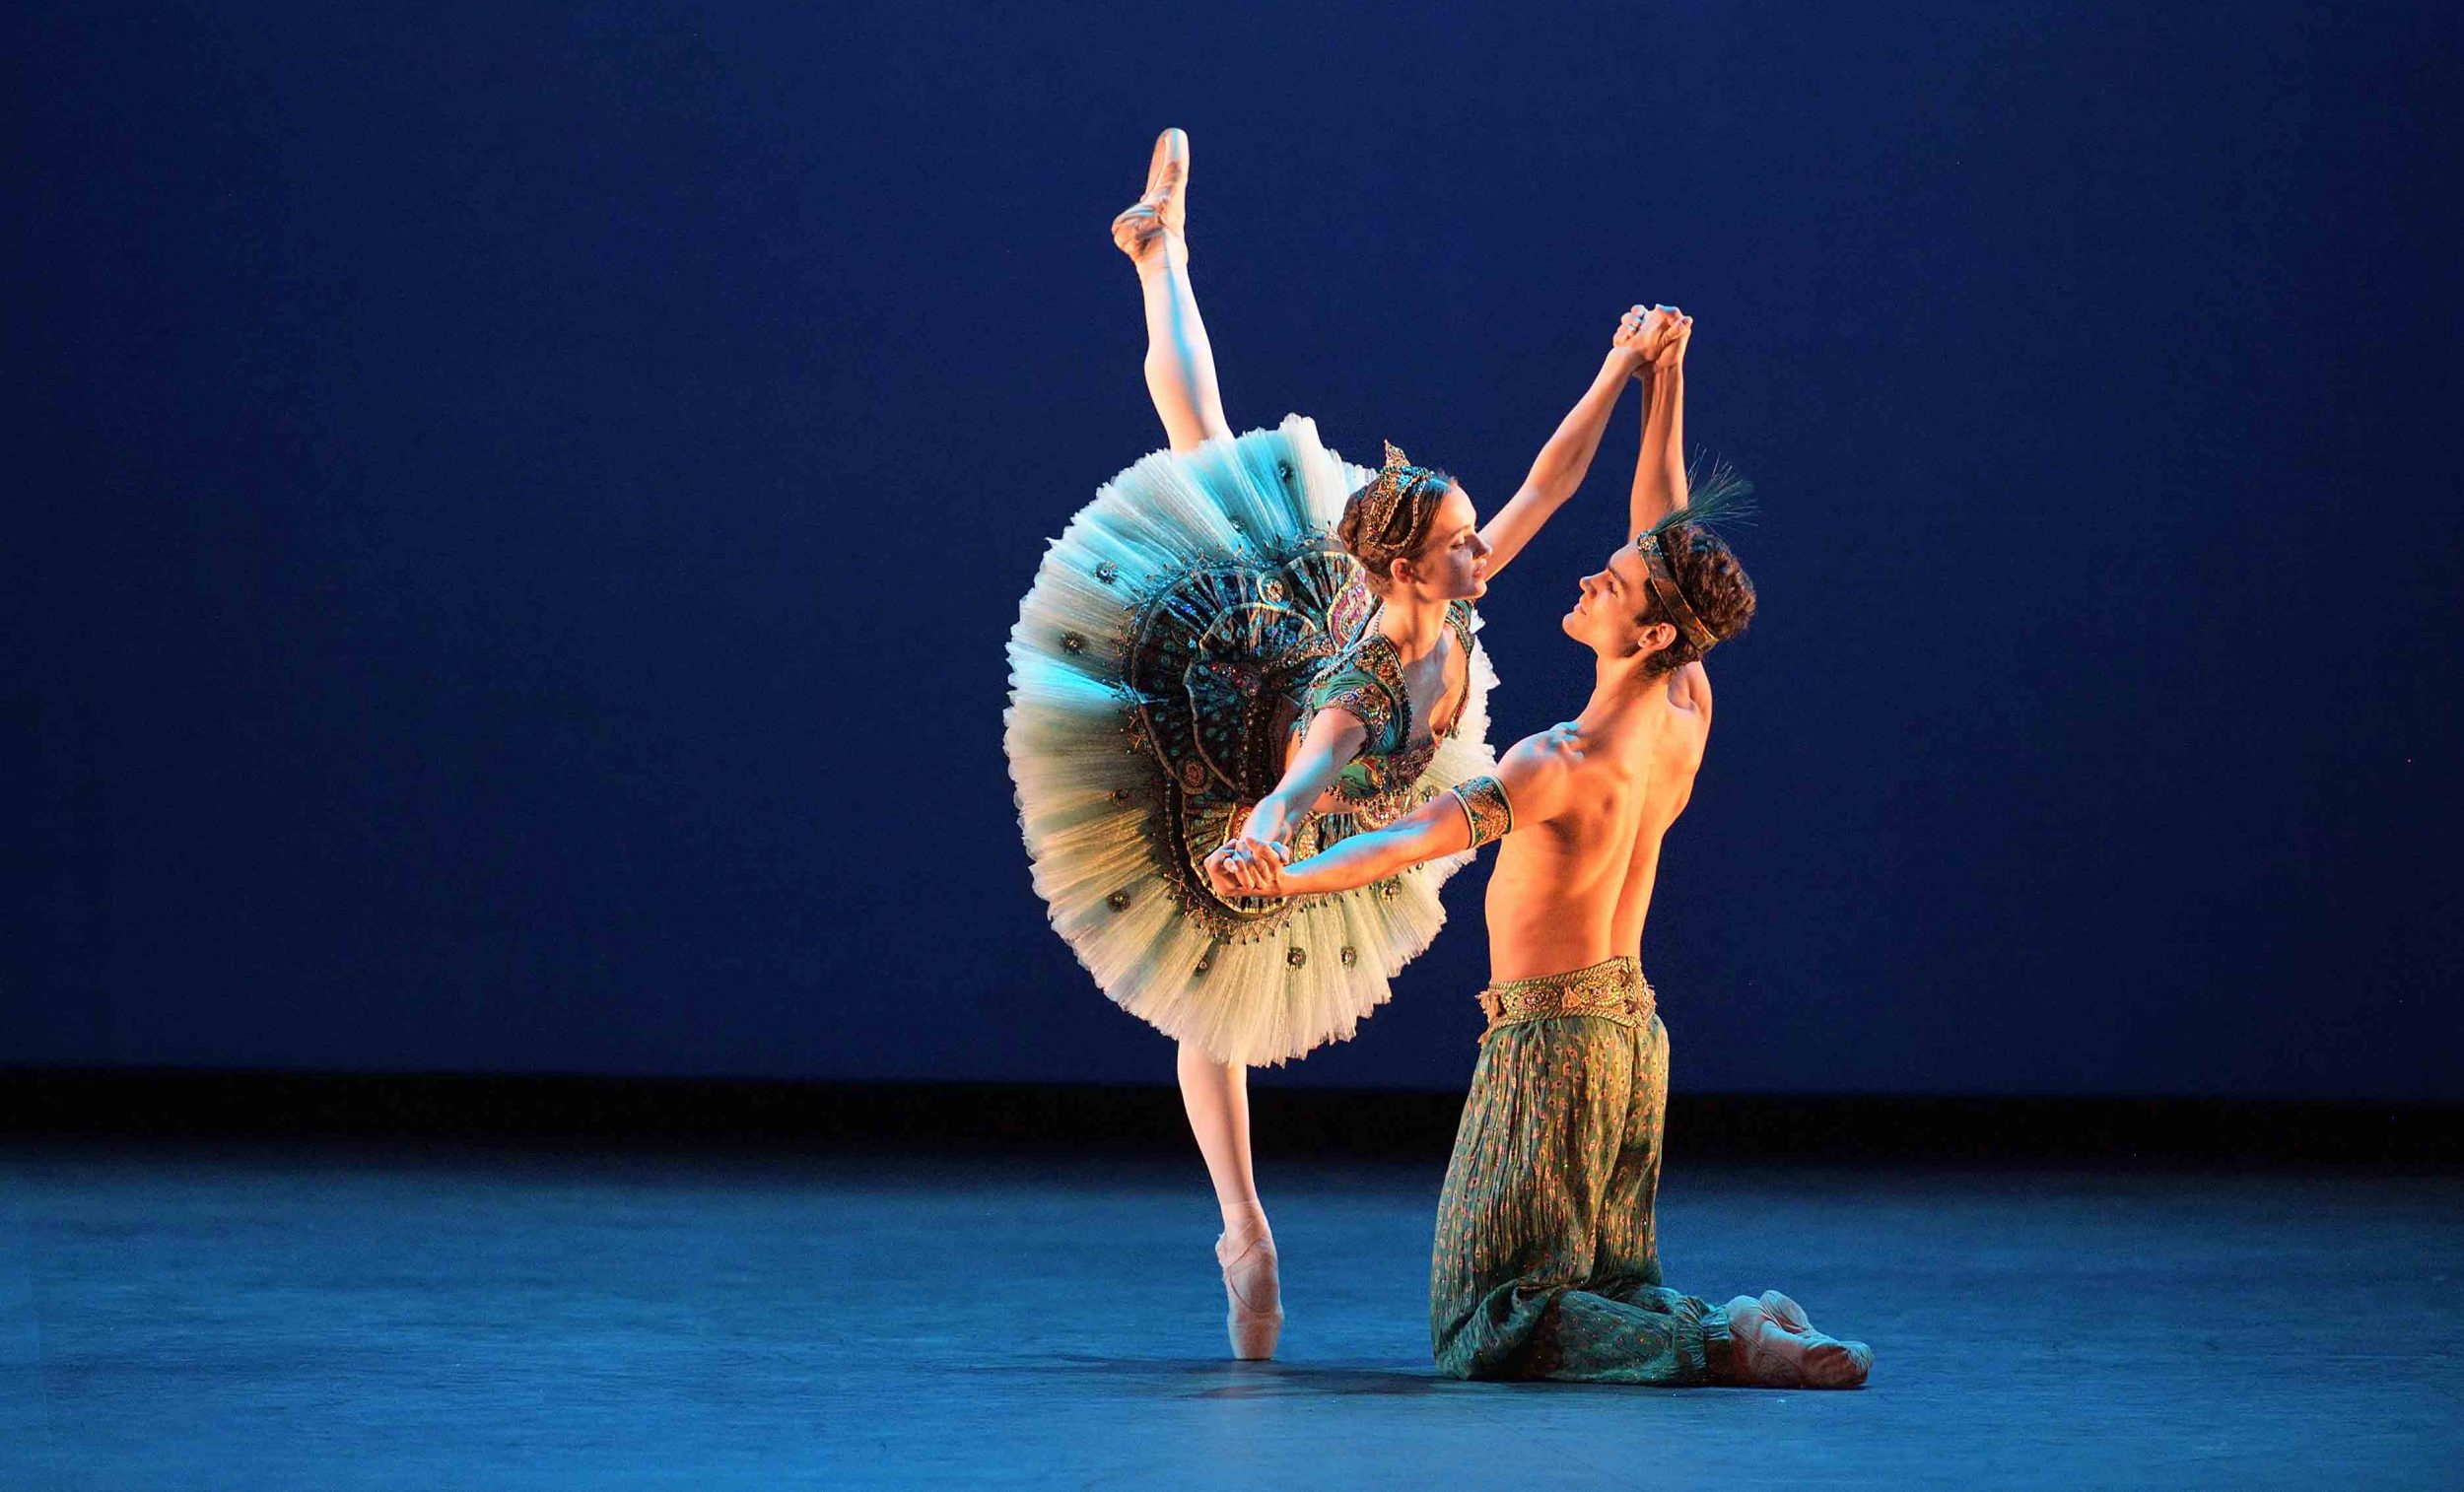 Francesca-Velicu-and-Daniel-McCormick-performing-Le-Corsaire-©-Laurent-Liotardo-(3)